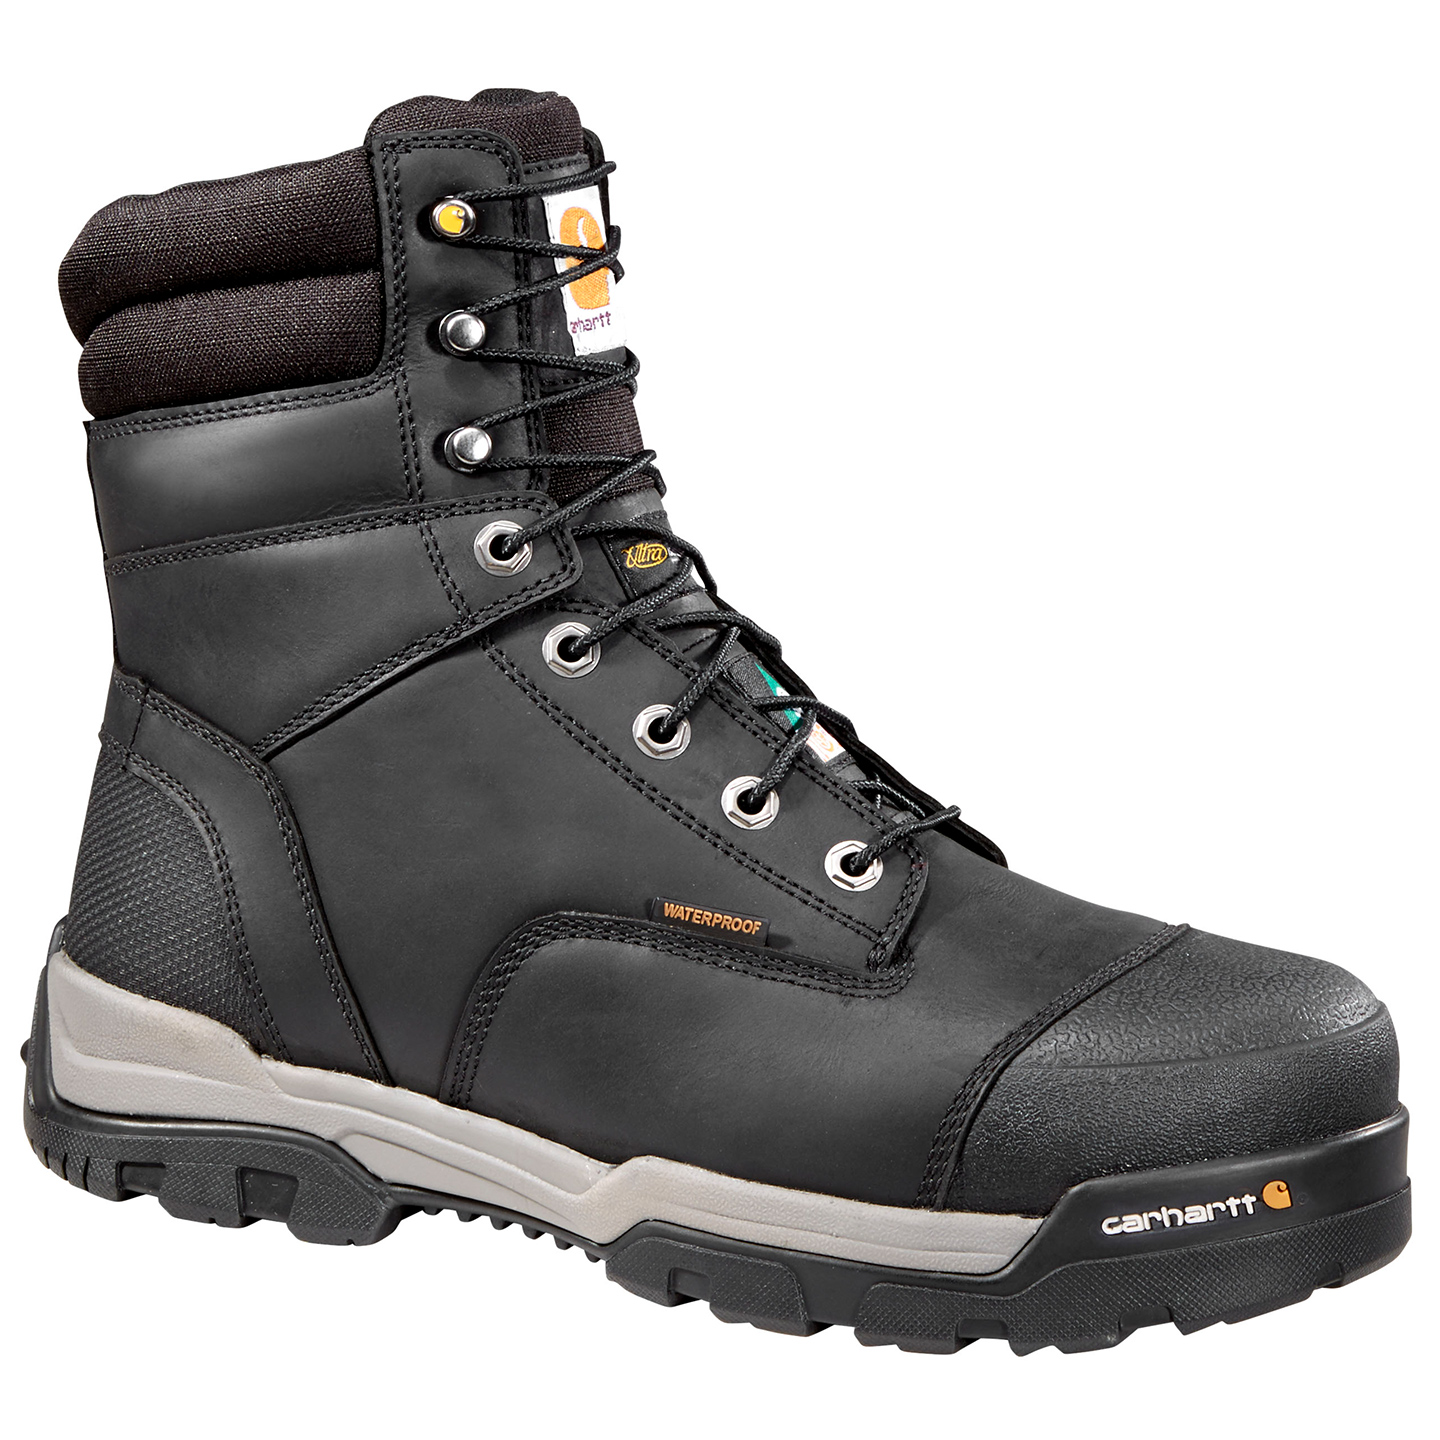 1953719e7ea Carhartt Ground Force 8 inch CSA Composite Toe Puncture Resistant Insulated  Waterproof Men's Work Boots